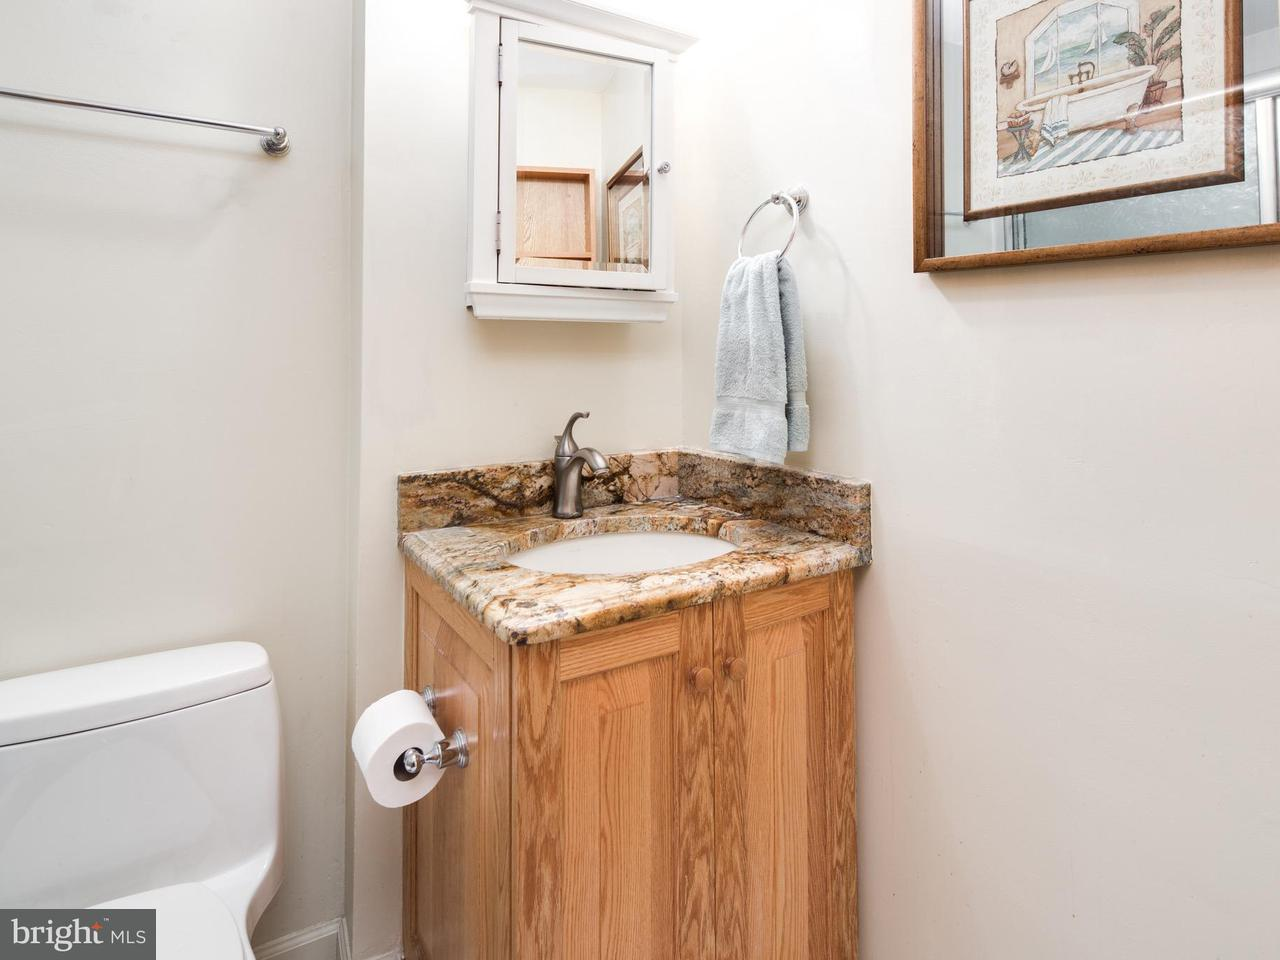 Additional photo for property listing at 950 25th St NW #112-N  Washington, District Of Columbia 20037 United States